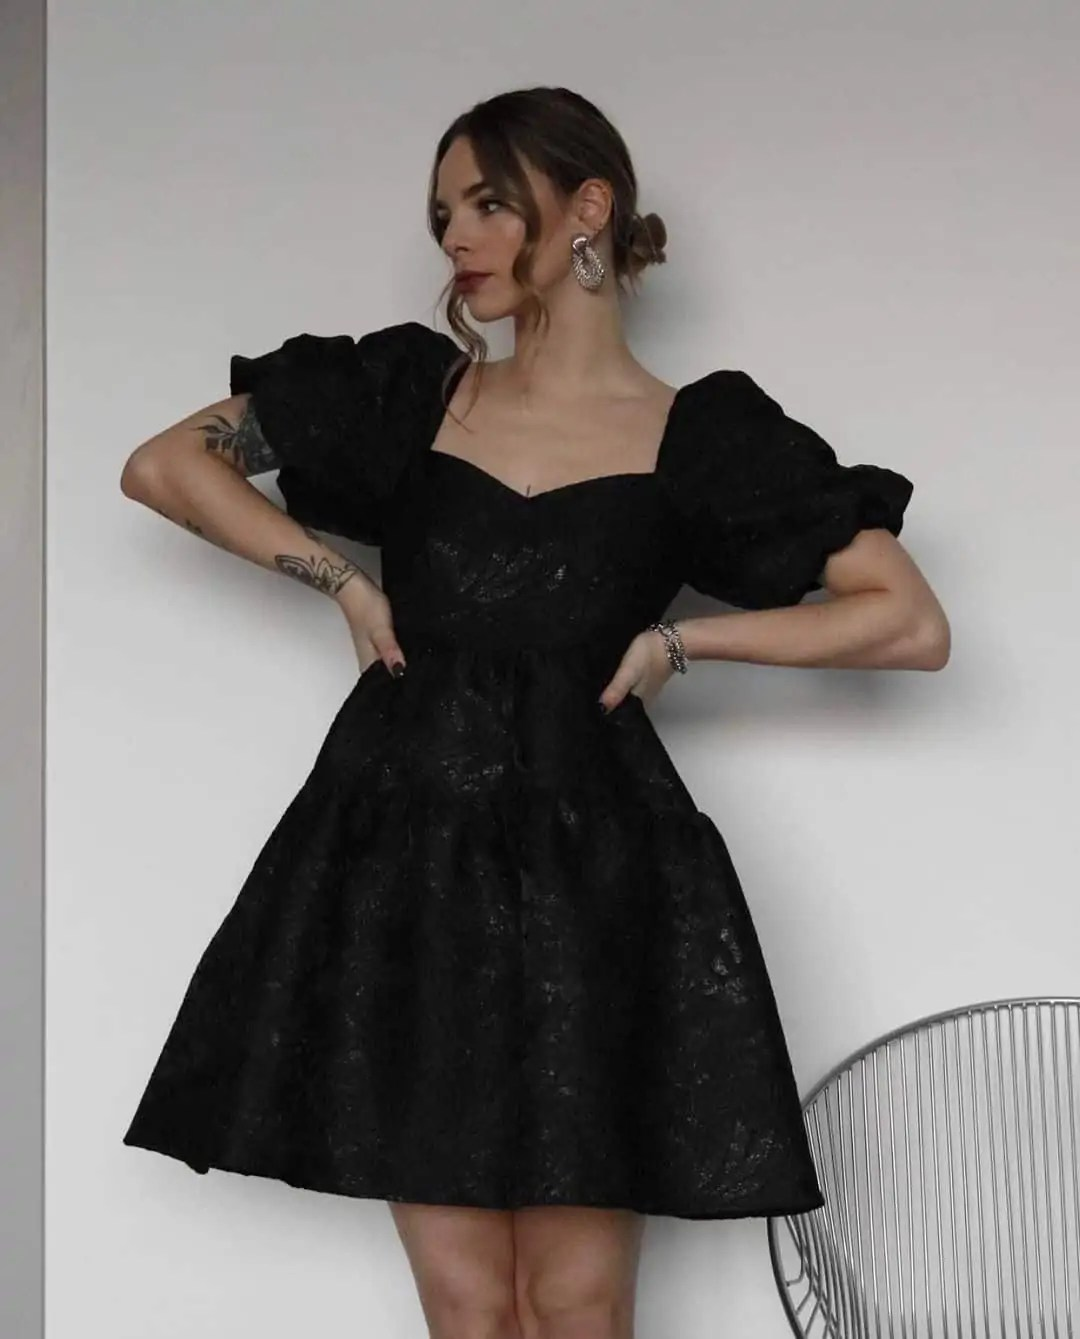 All black outfit ideas that you have to see - ultimate inspo guide 9